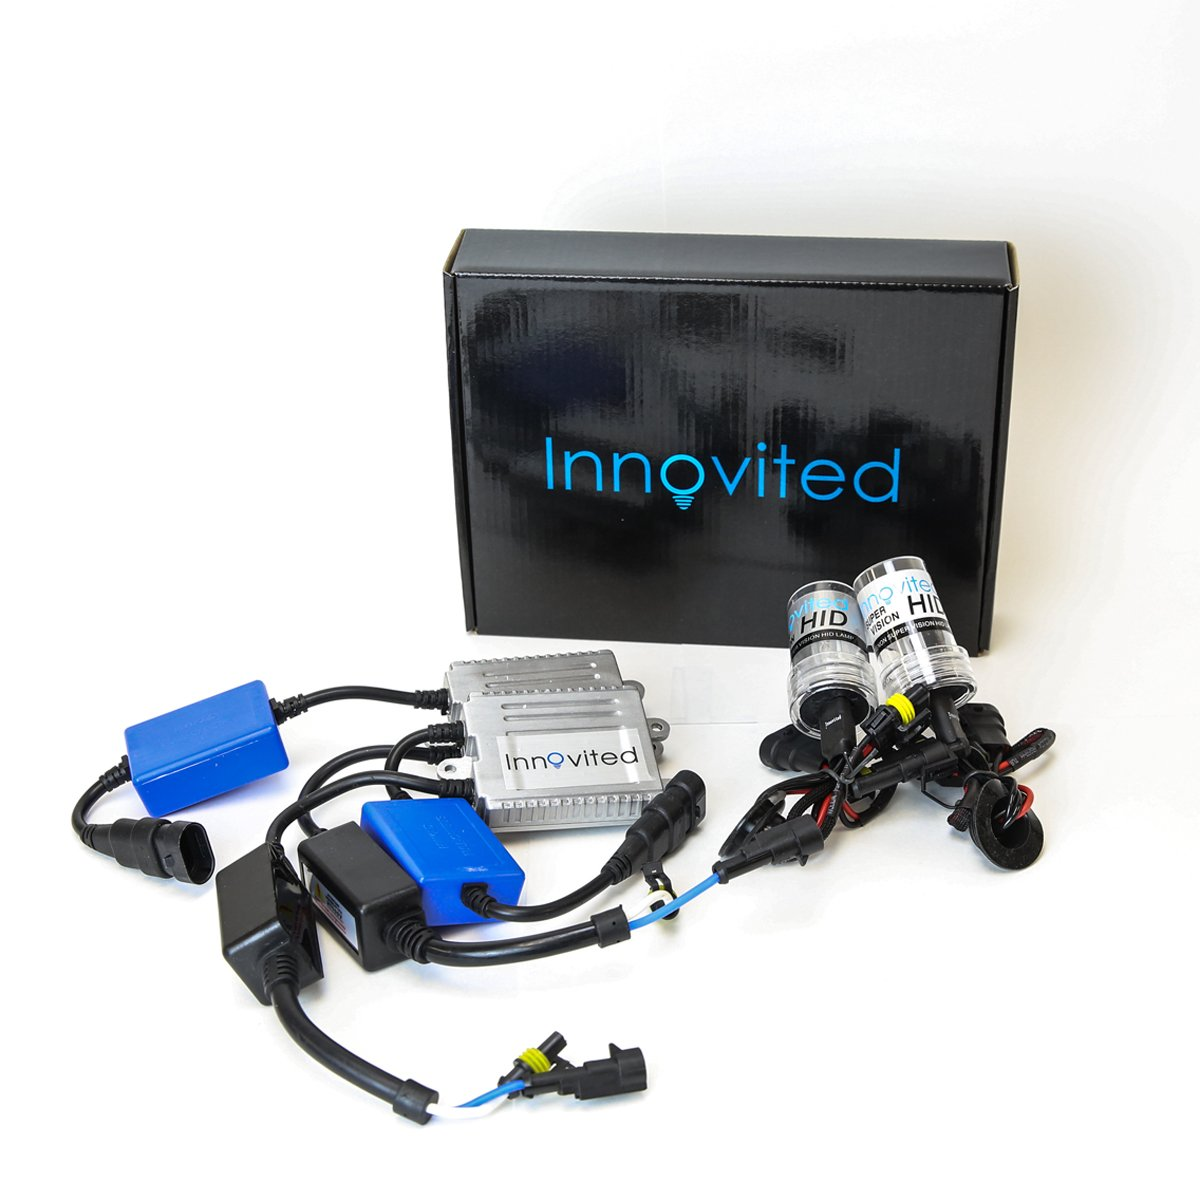 Innovited Premium AC Canbus Error Free HID Lights